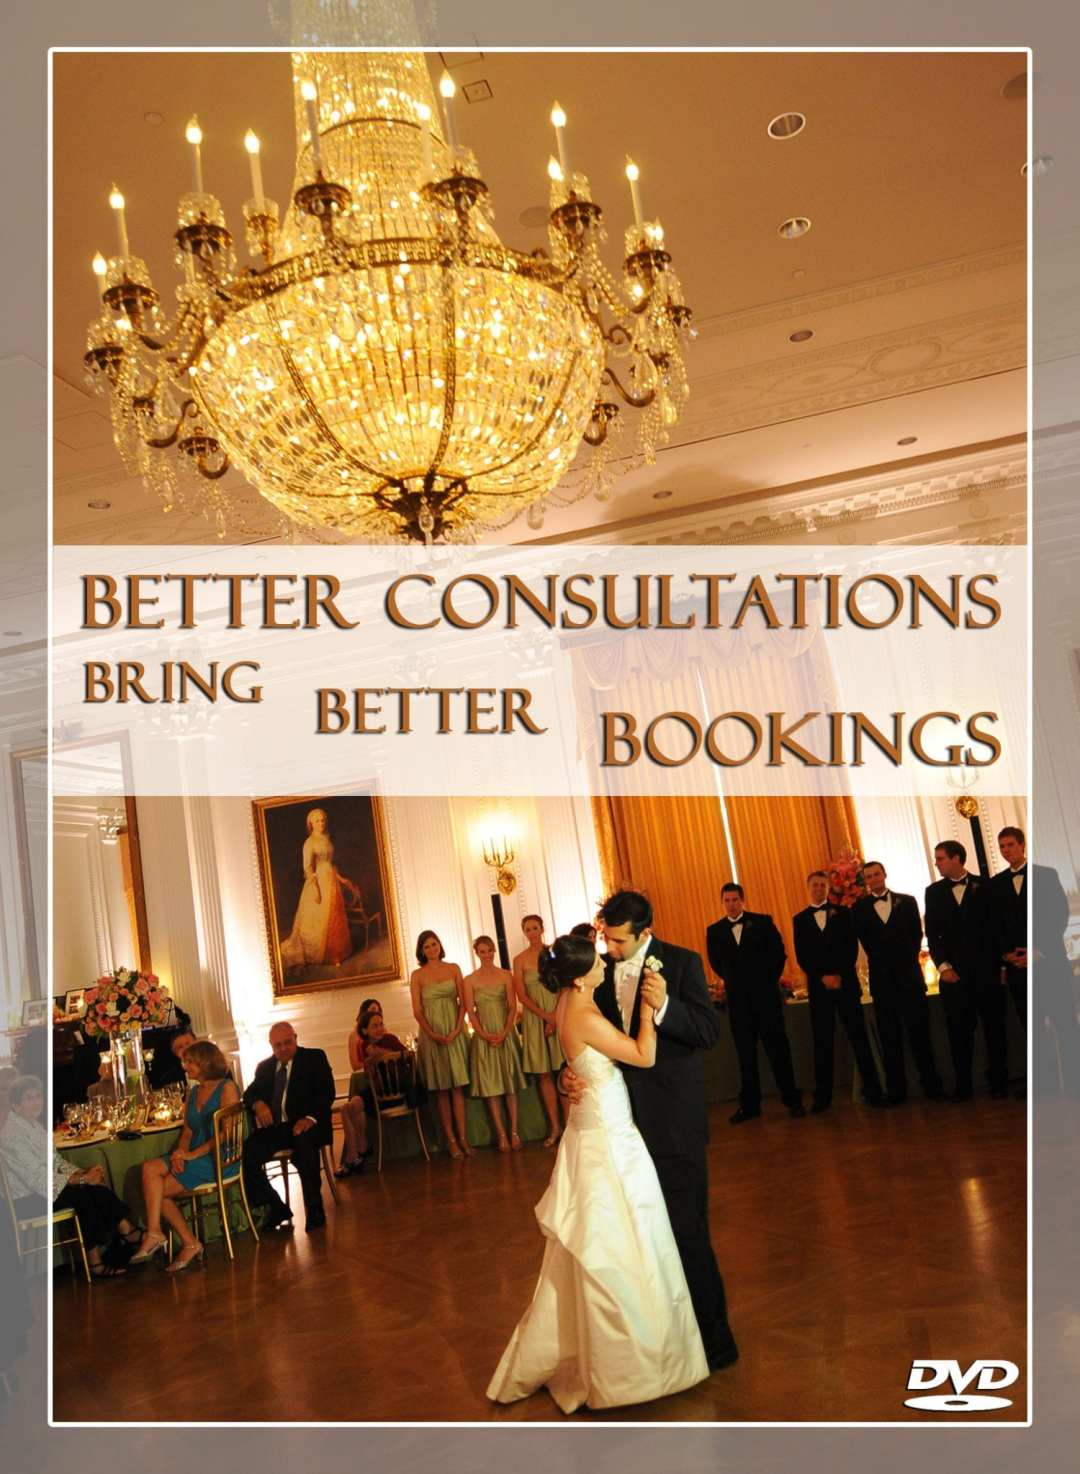 Peter Merry's DVD, Better Consultations Bring Better Bookings